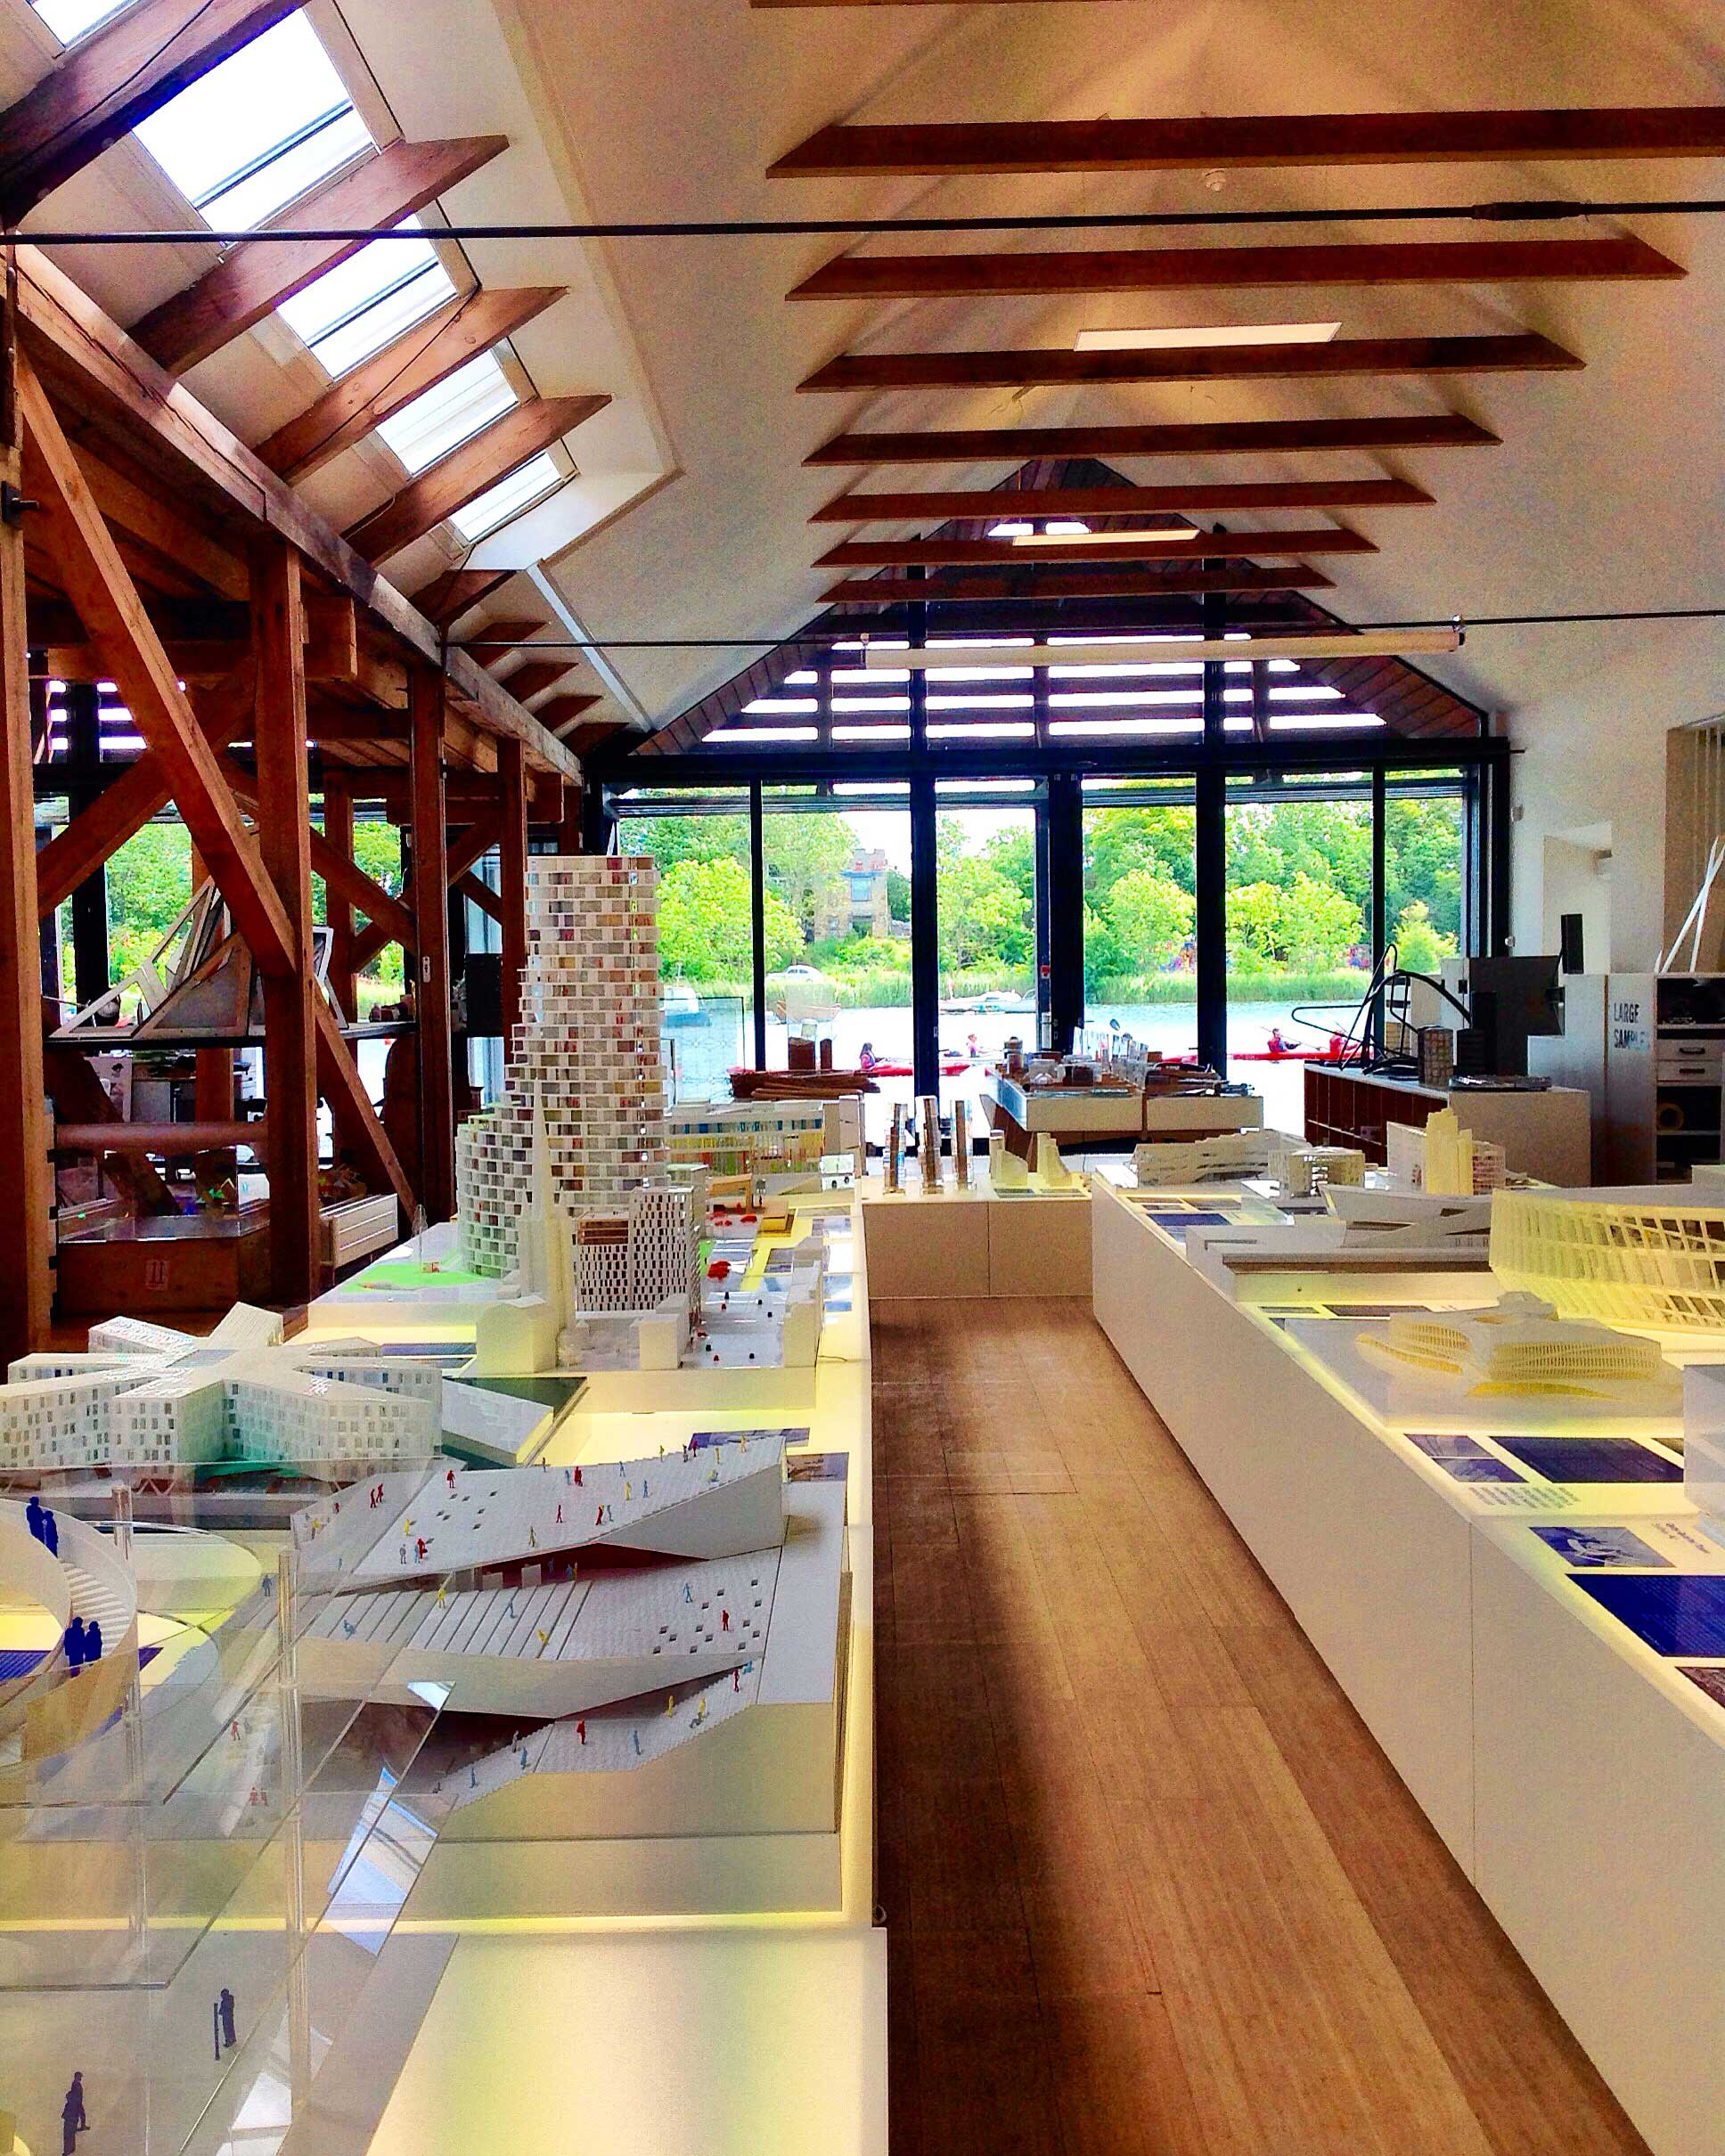 View of the scale models area